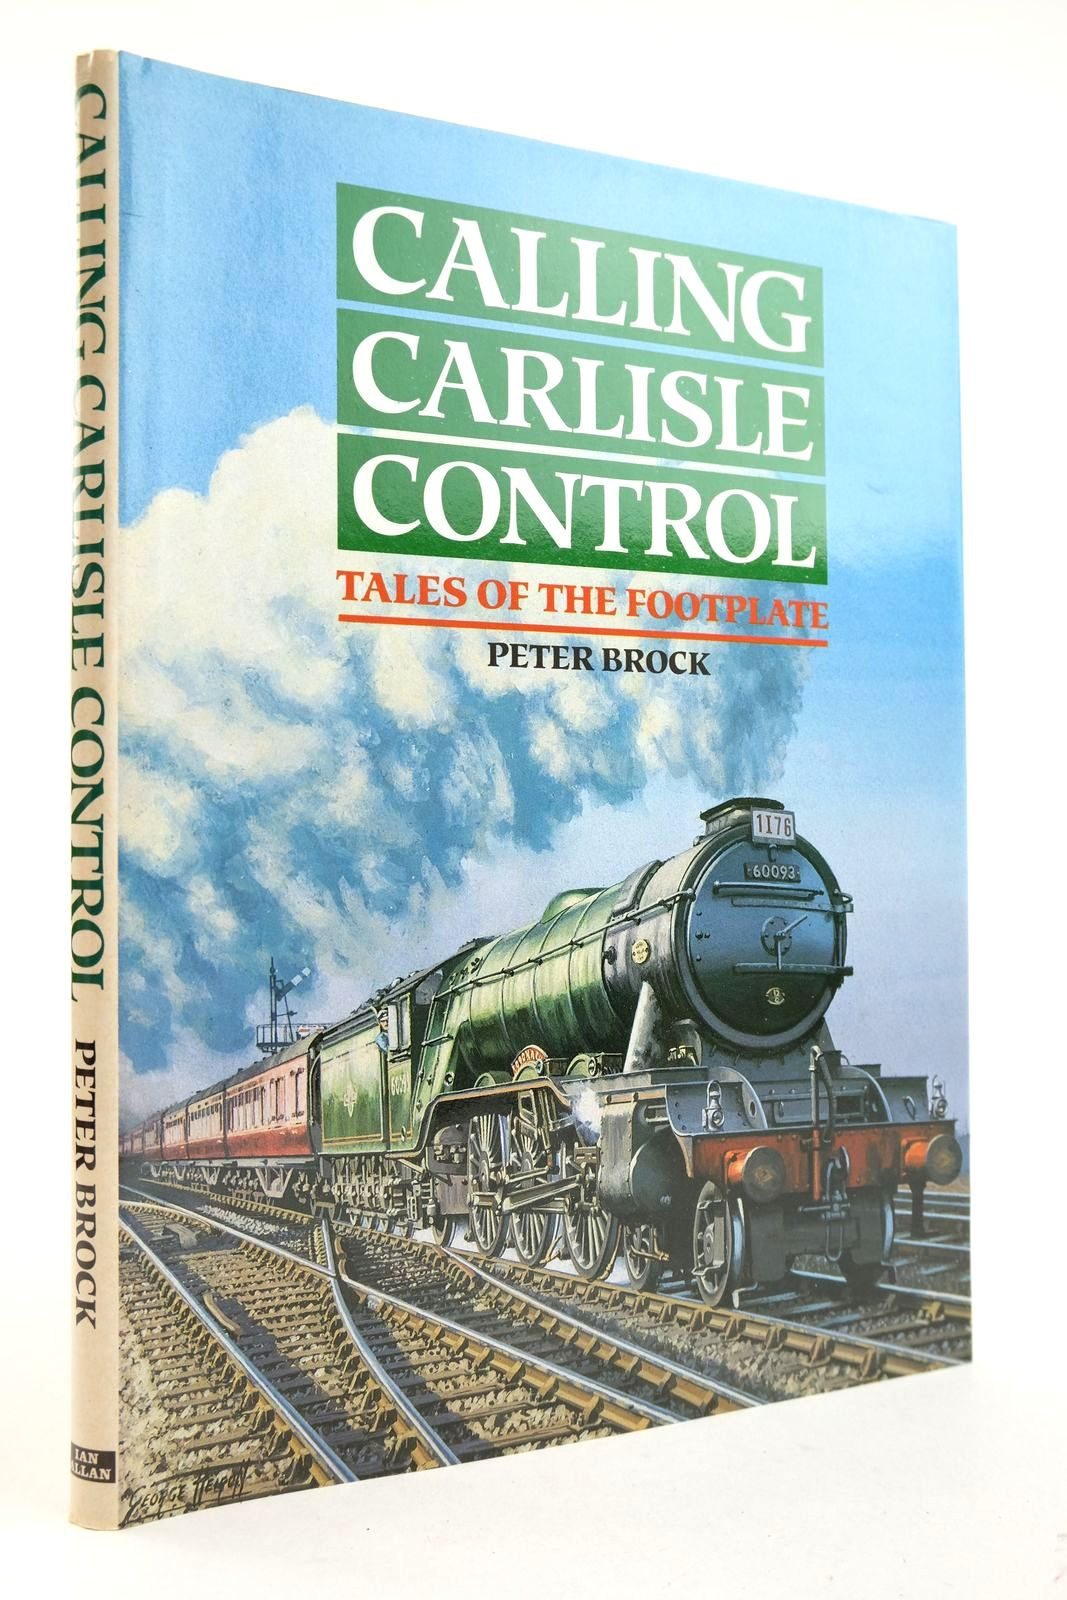 Photo of CALLING CARLISLE CONTROL written by Brock, Peter published by Ian Allan (STOCK CODE: 2133108)  for sale by Stella & Rose's Books